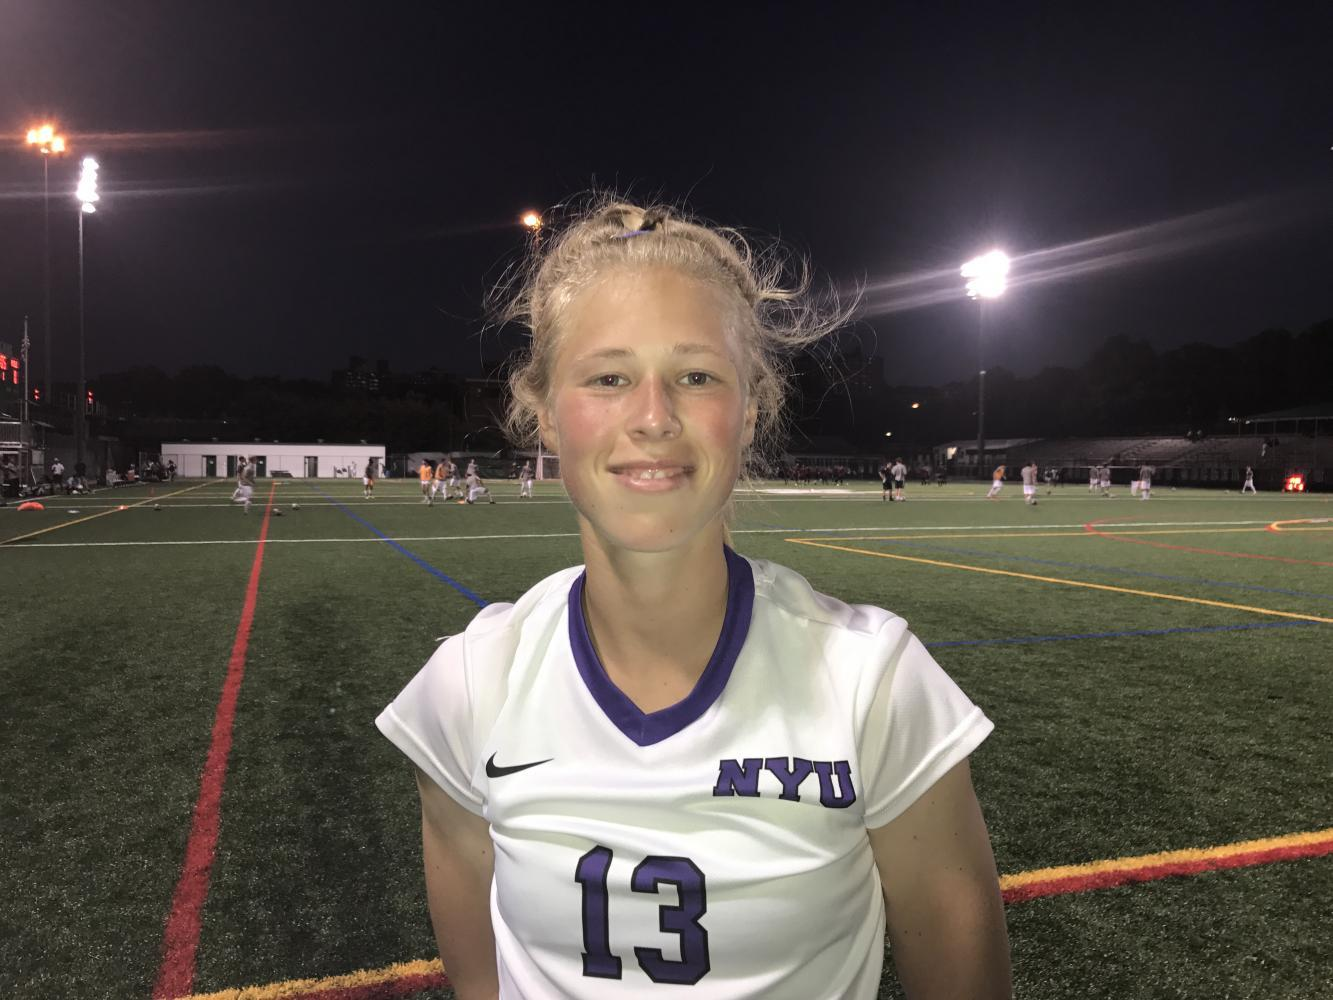 Meghan Marhan, an NYU Stern freshman, scored her first goal on Sept. 19 at the game against Farmingdale State College